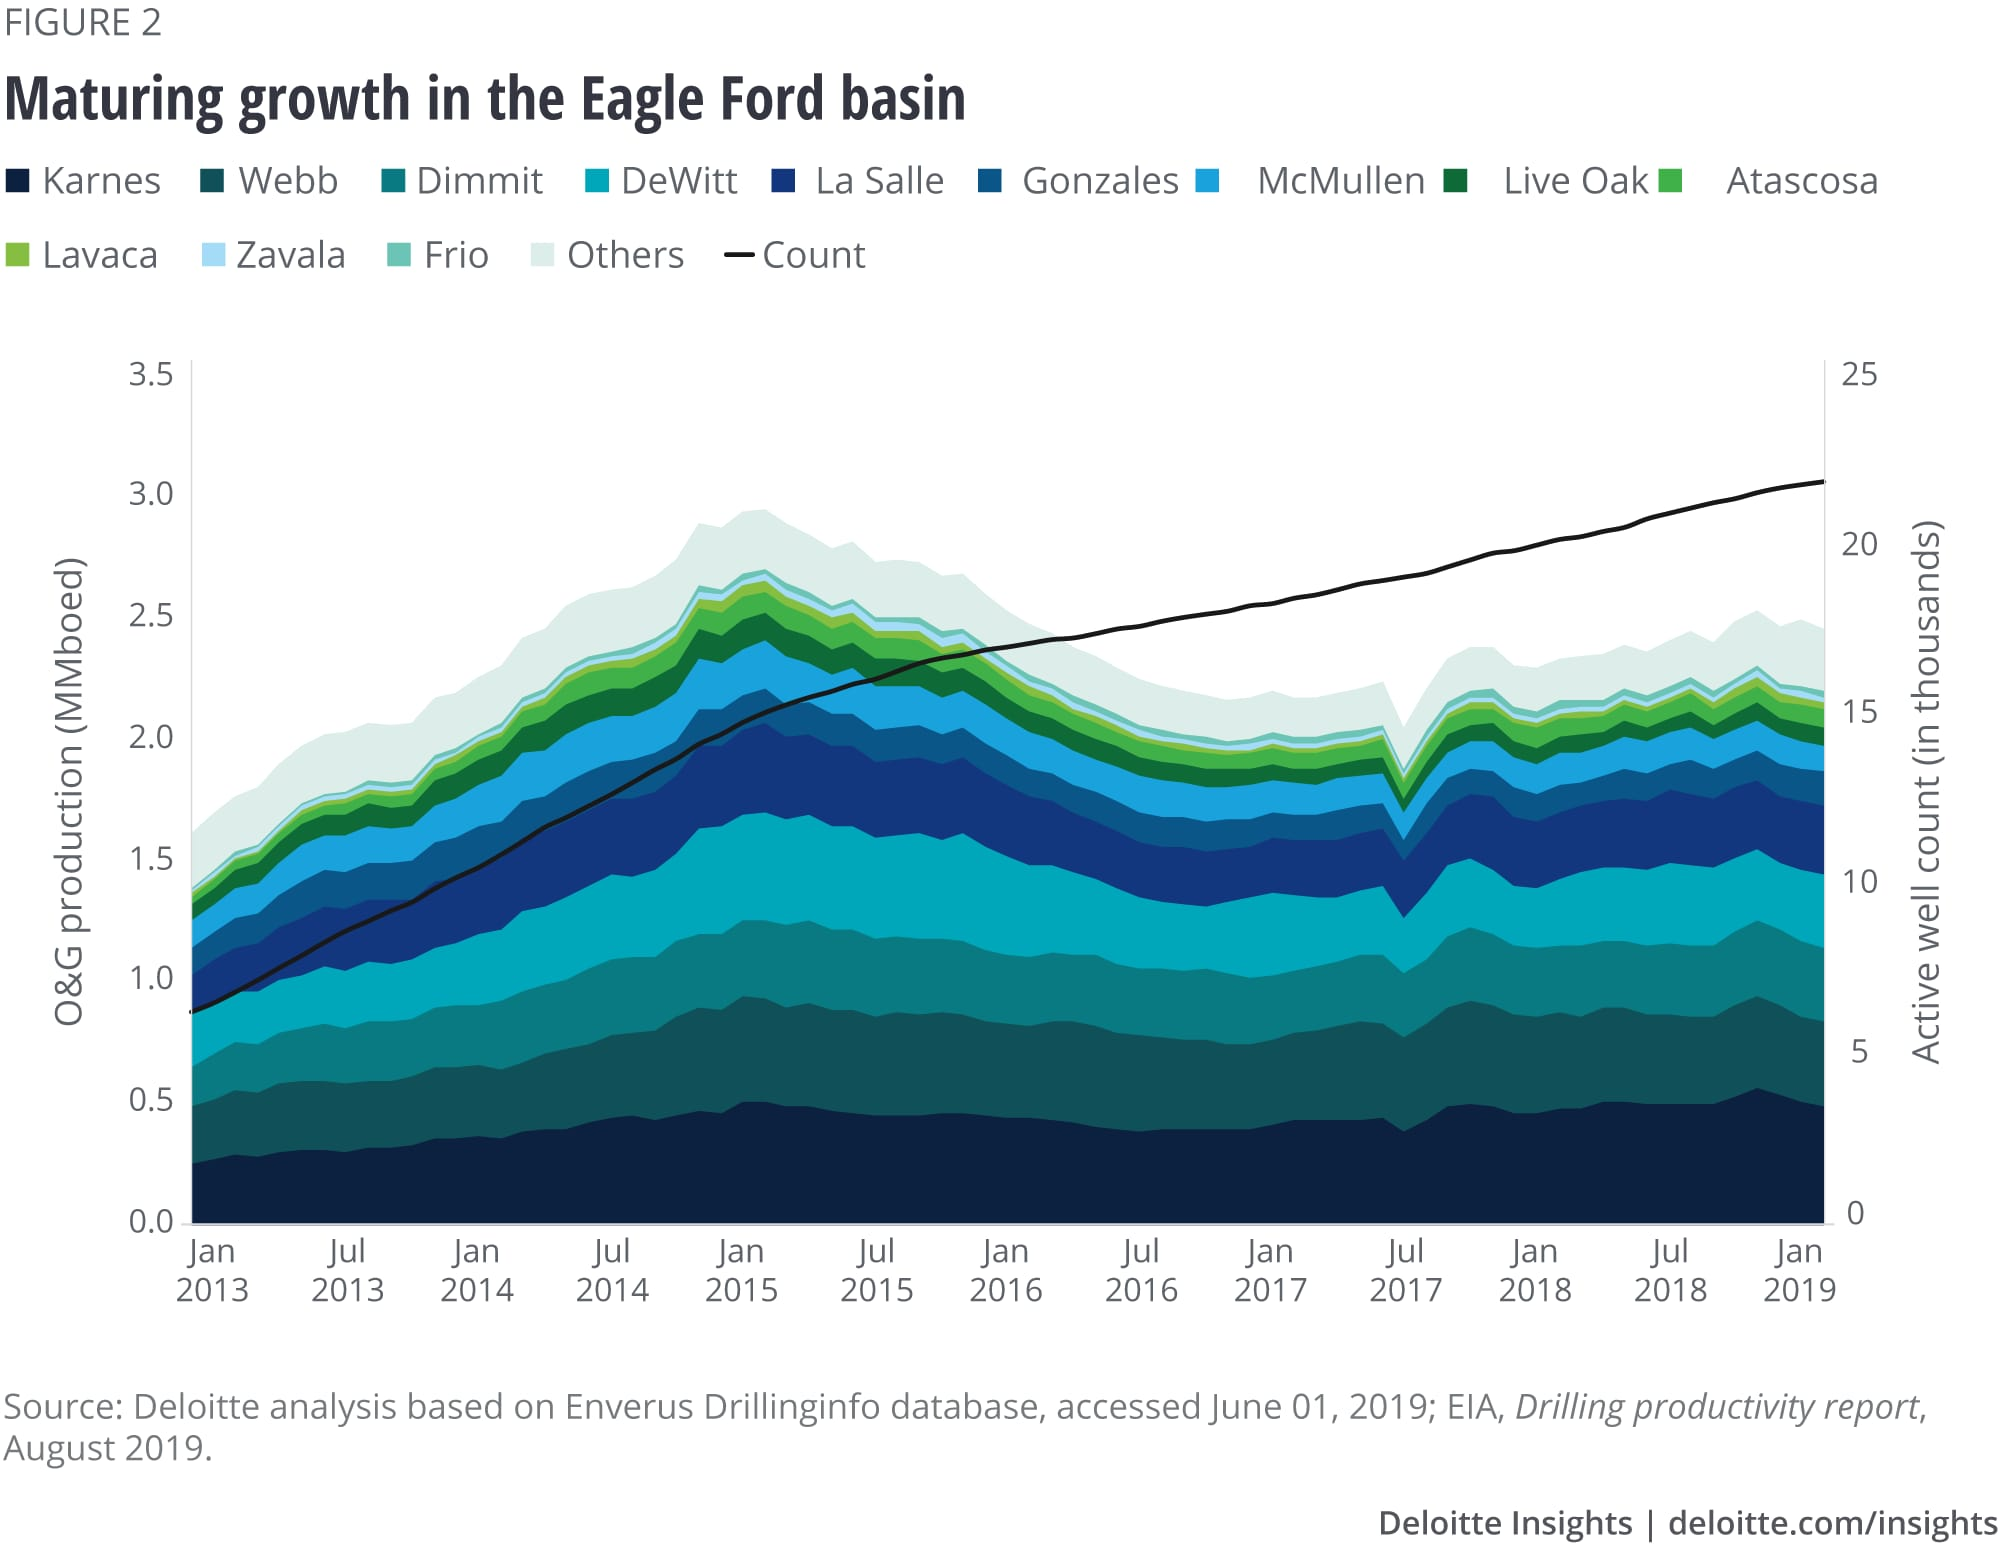 Maturing growth in the Eagle Ford basin